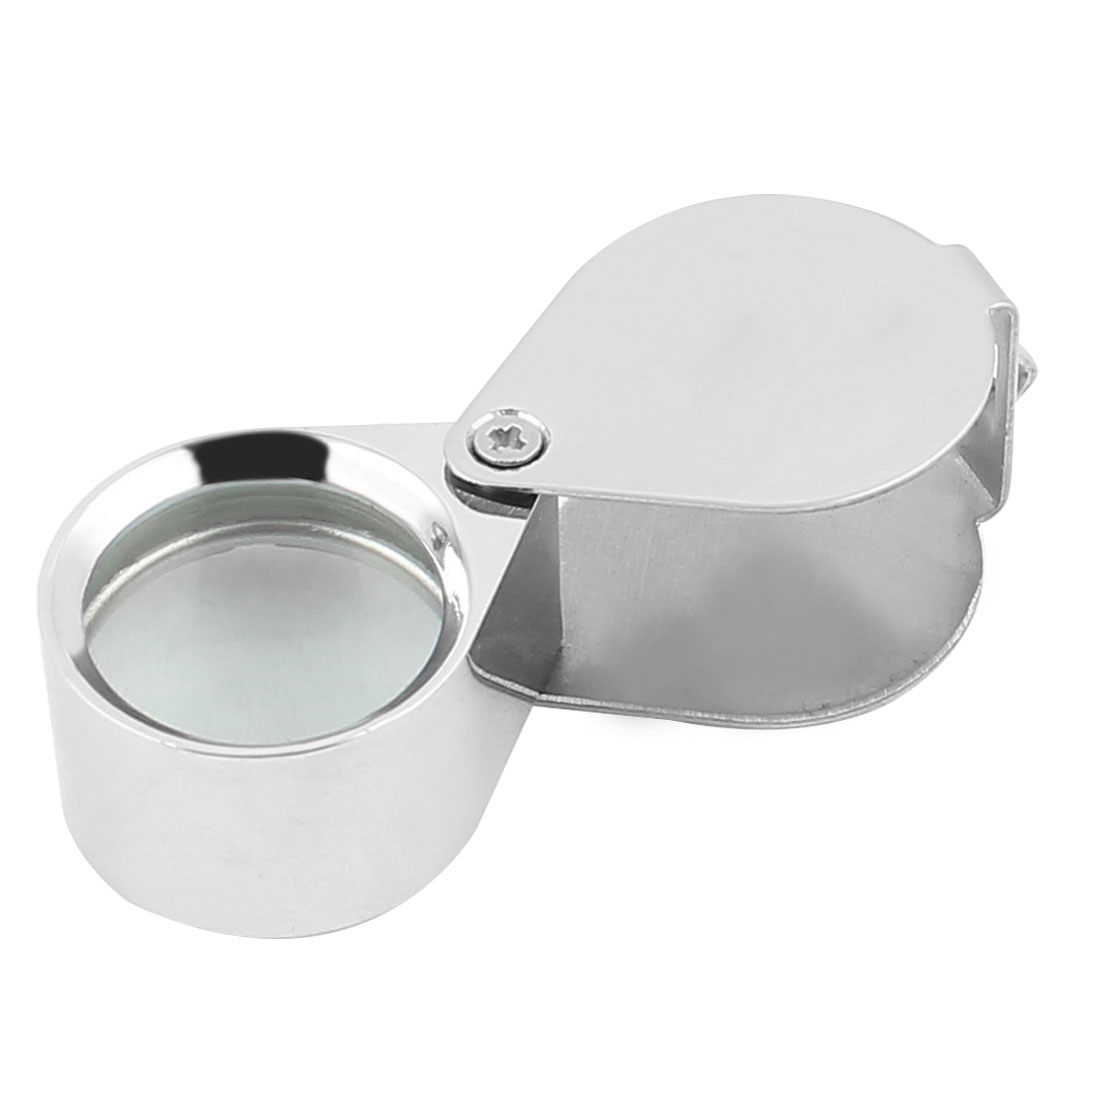 5X Glass Magnifying Lens Foldable Magnifier Jeweler Eye Jewelry Loupe Loop 21mm